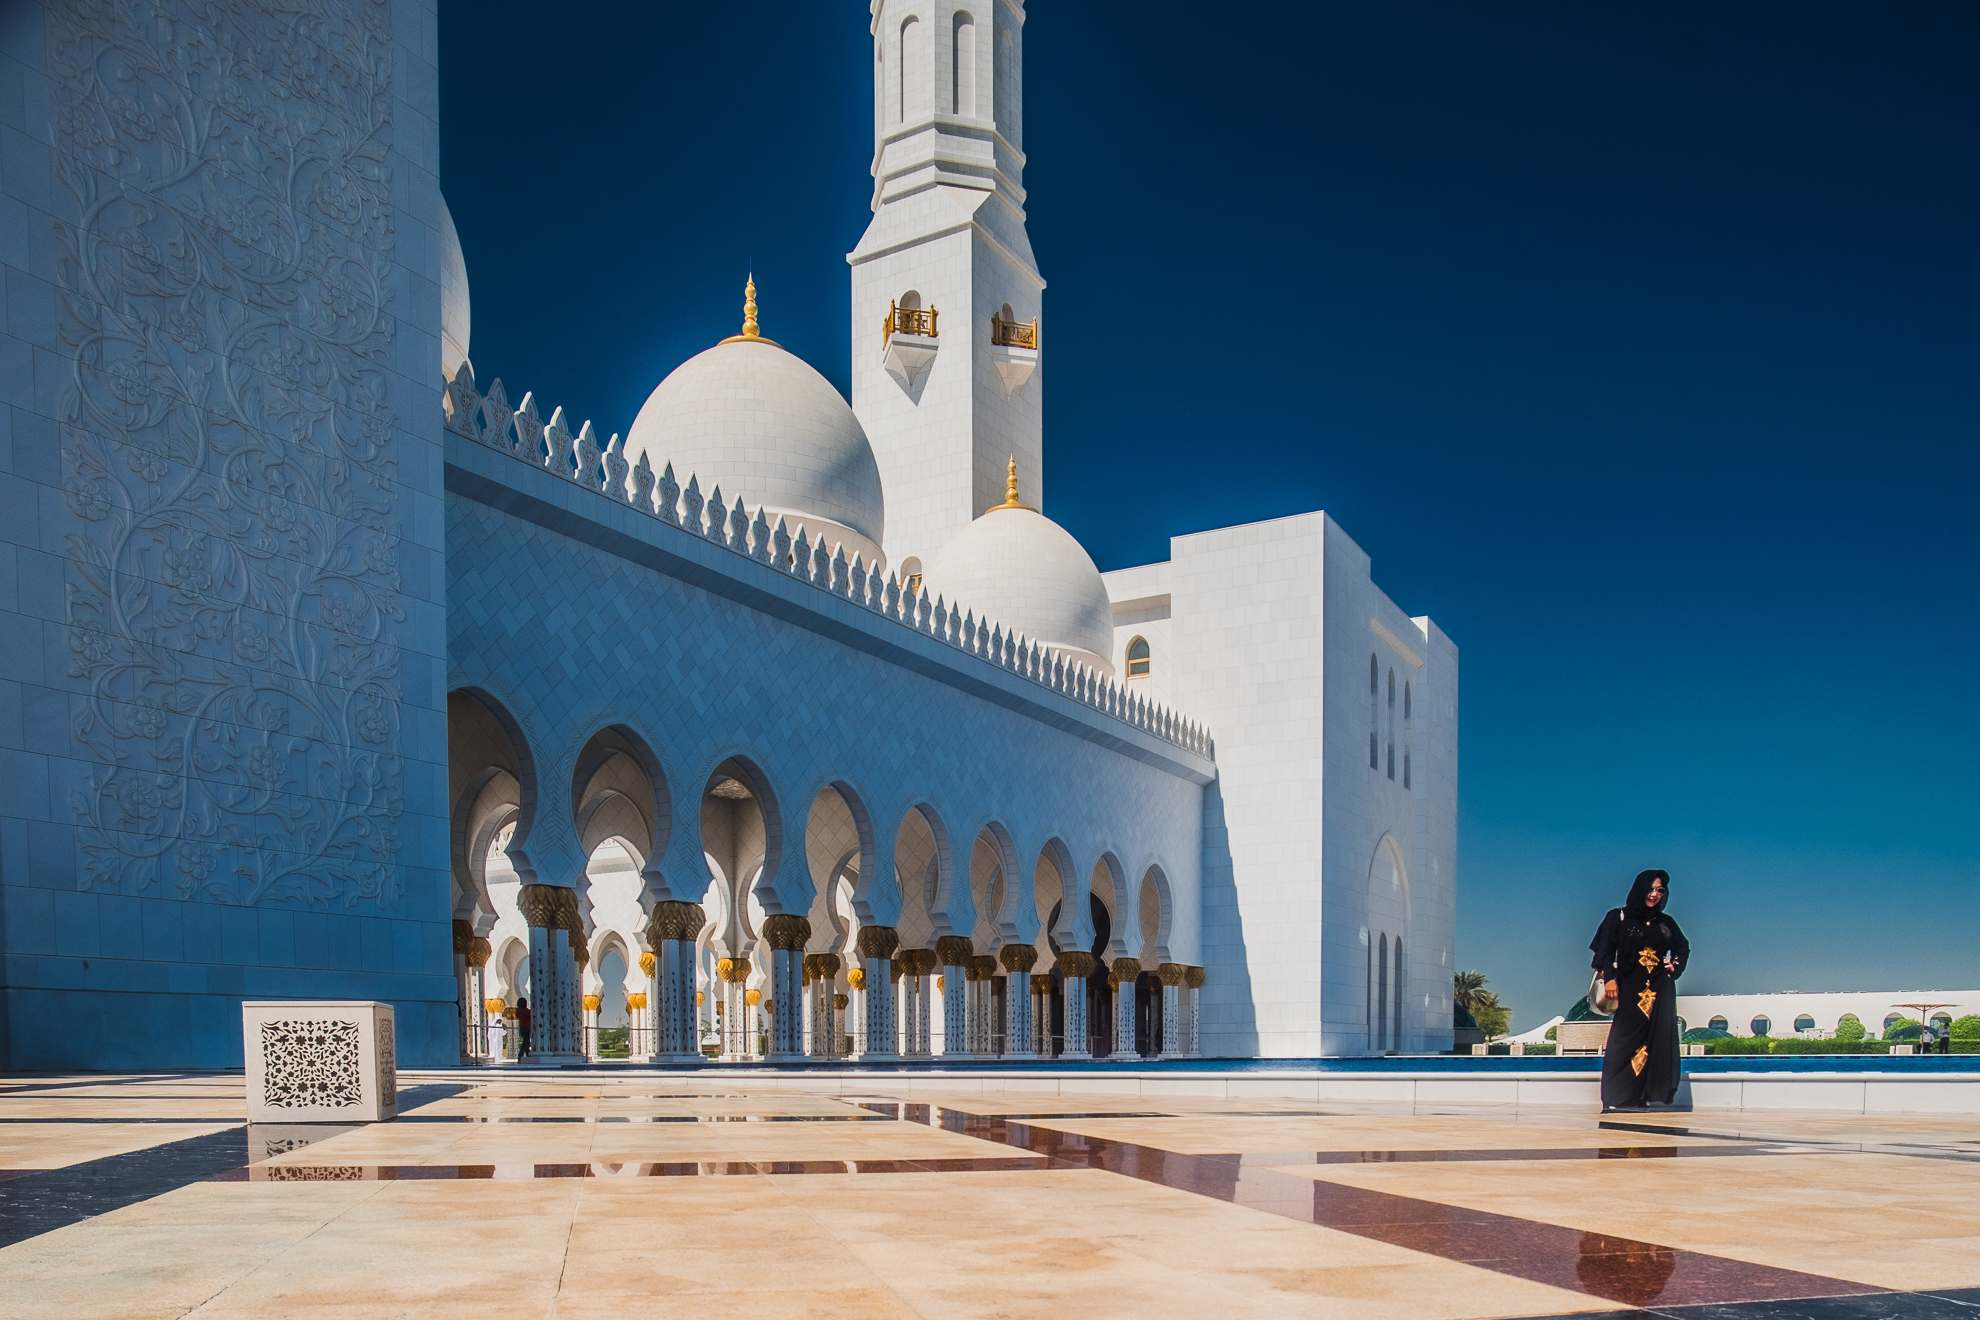 sheikh zayed grand mosque6 Picturesque Sheikh Zayed Grand Mosque in Abu Dhabi